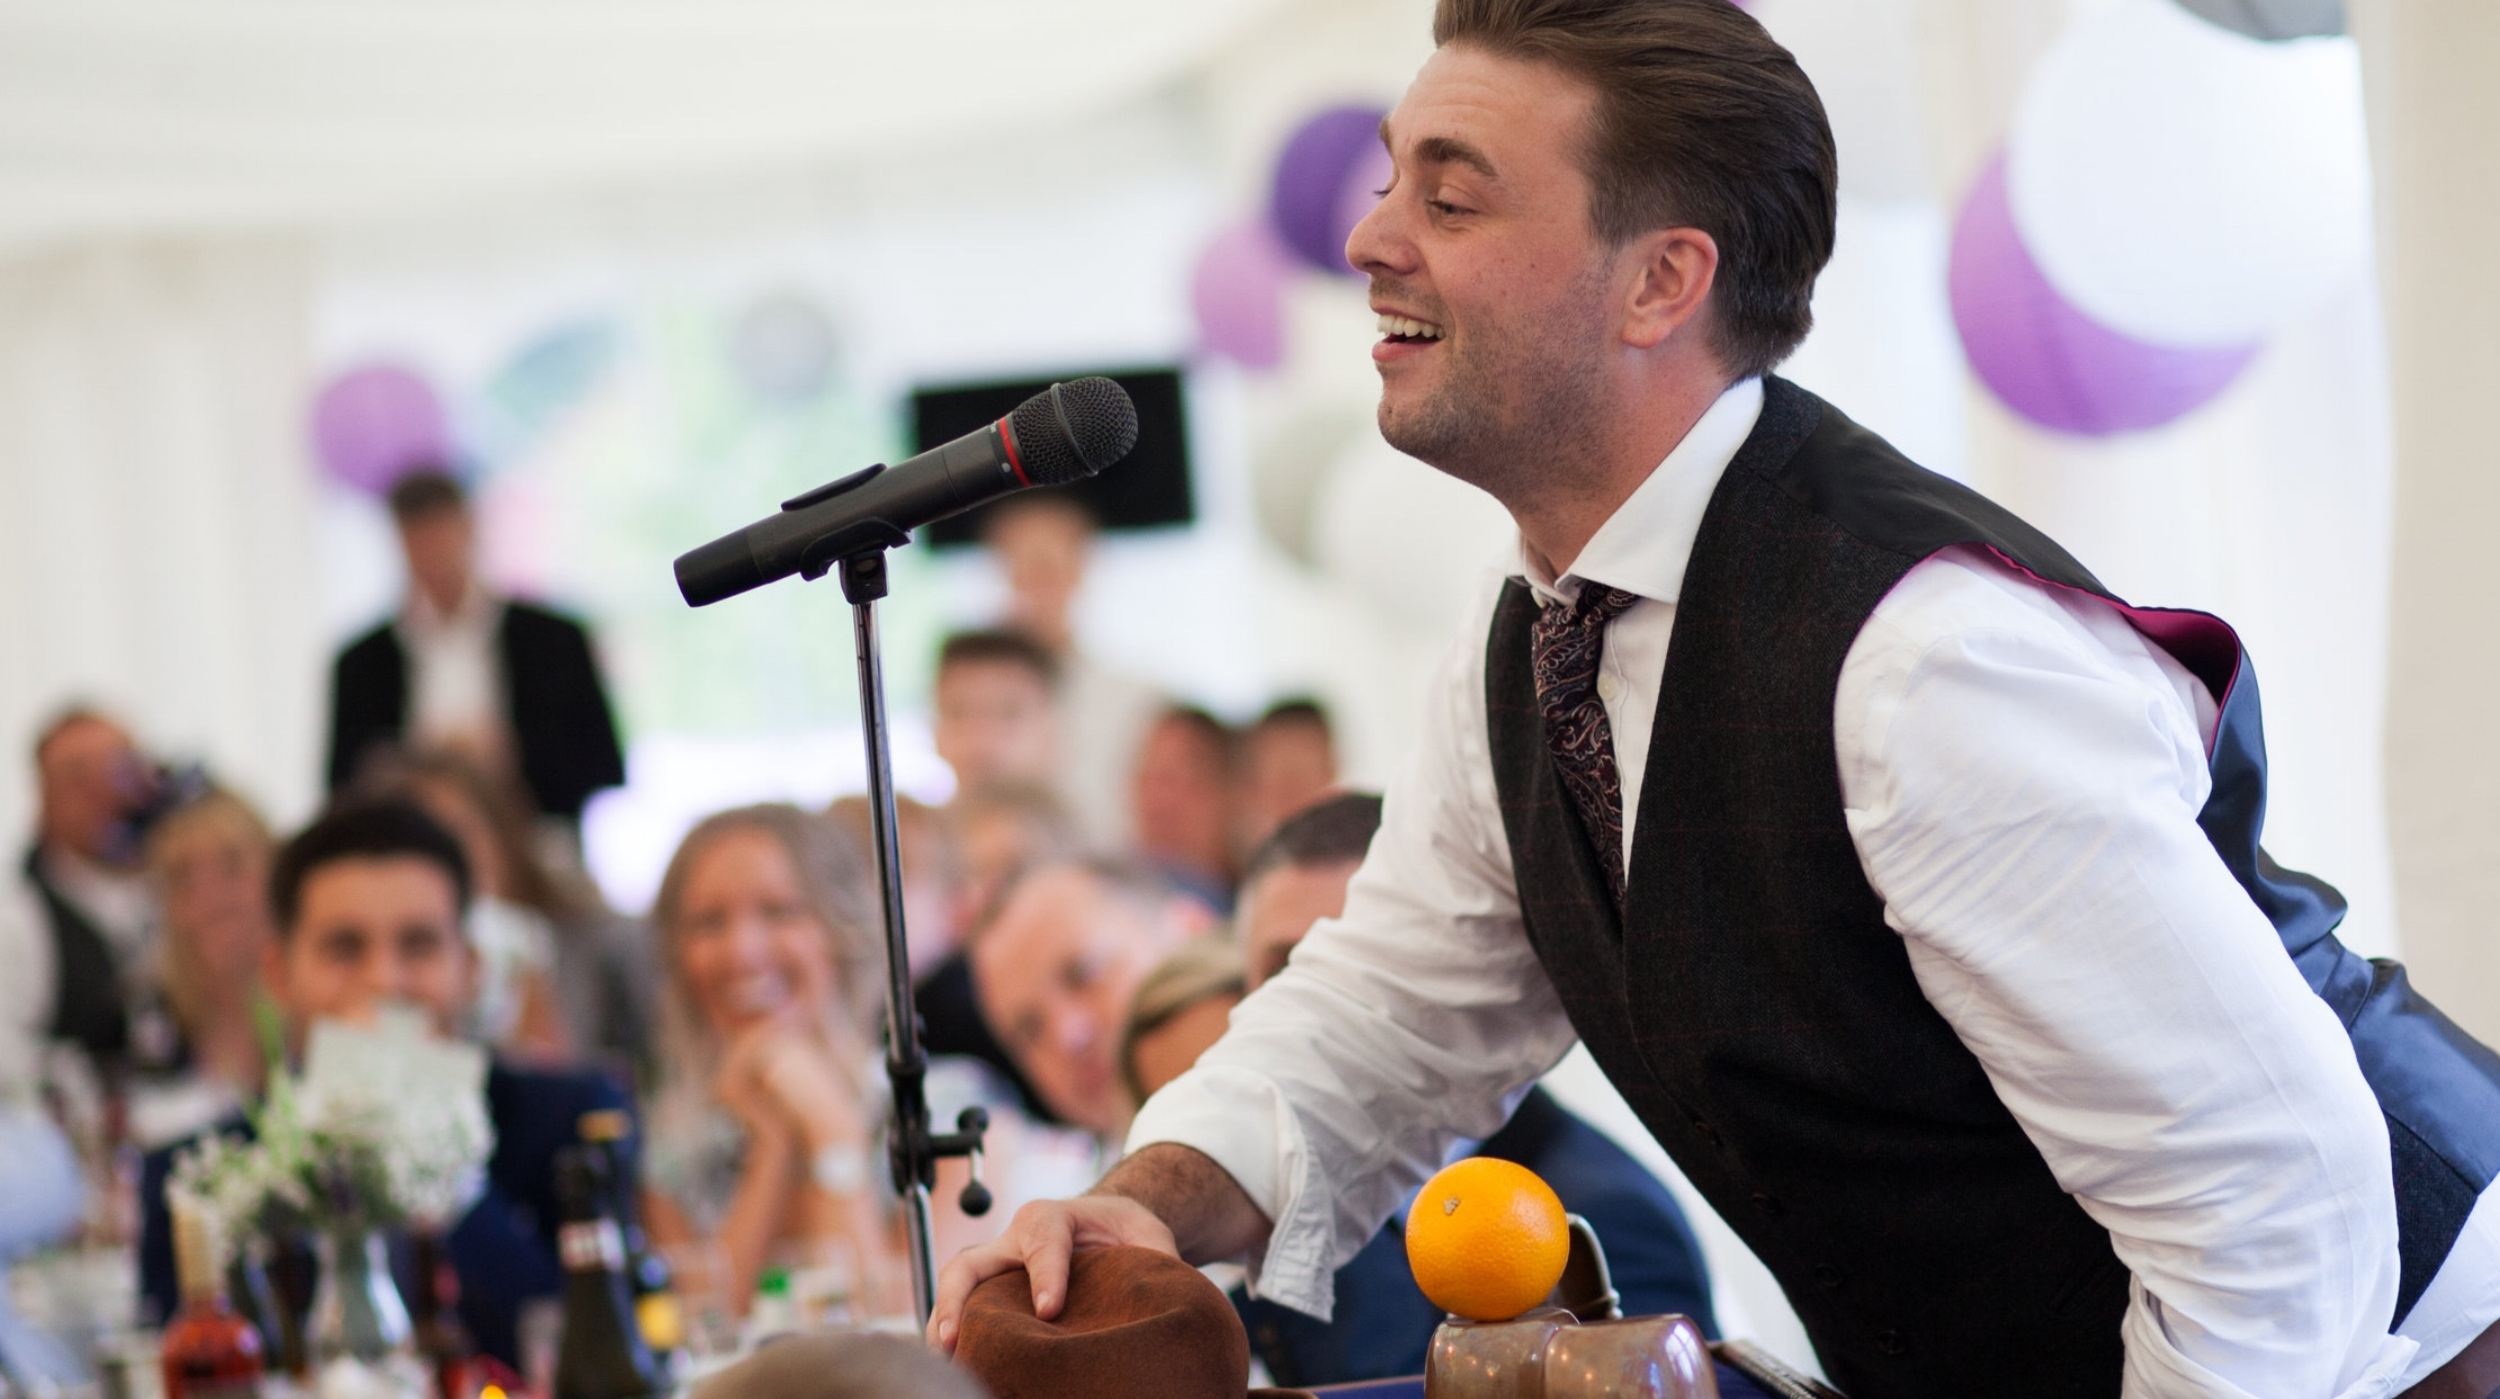 Adding a real WOW-factor to an event with a cabaret show is the ideal way to make it an unforgettable experience for your guests.